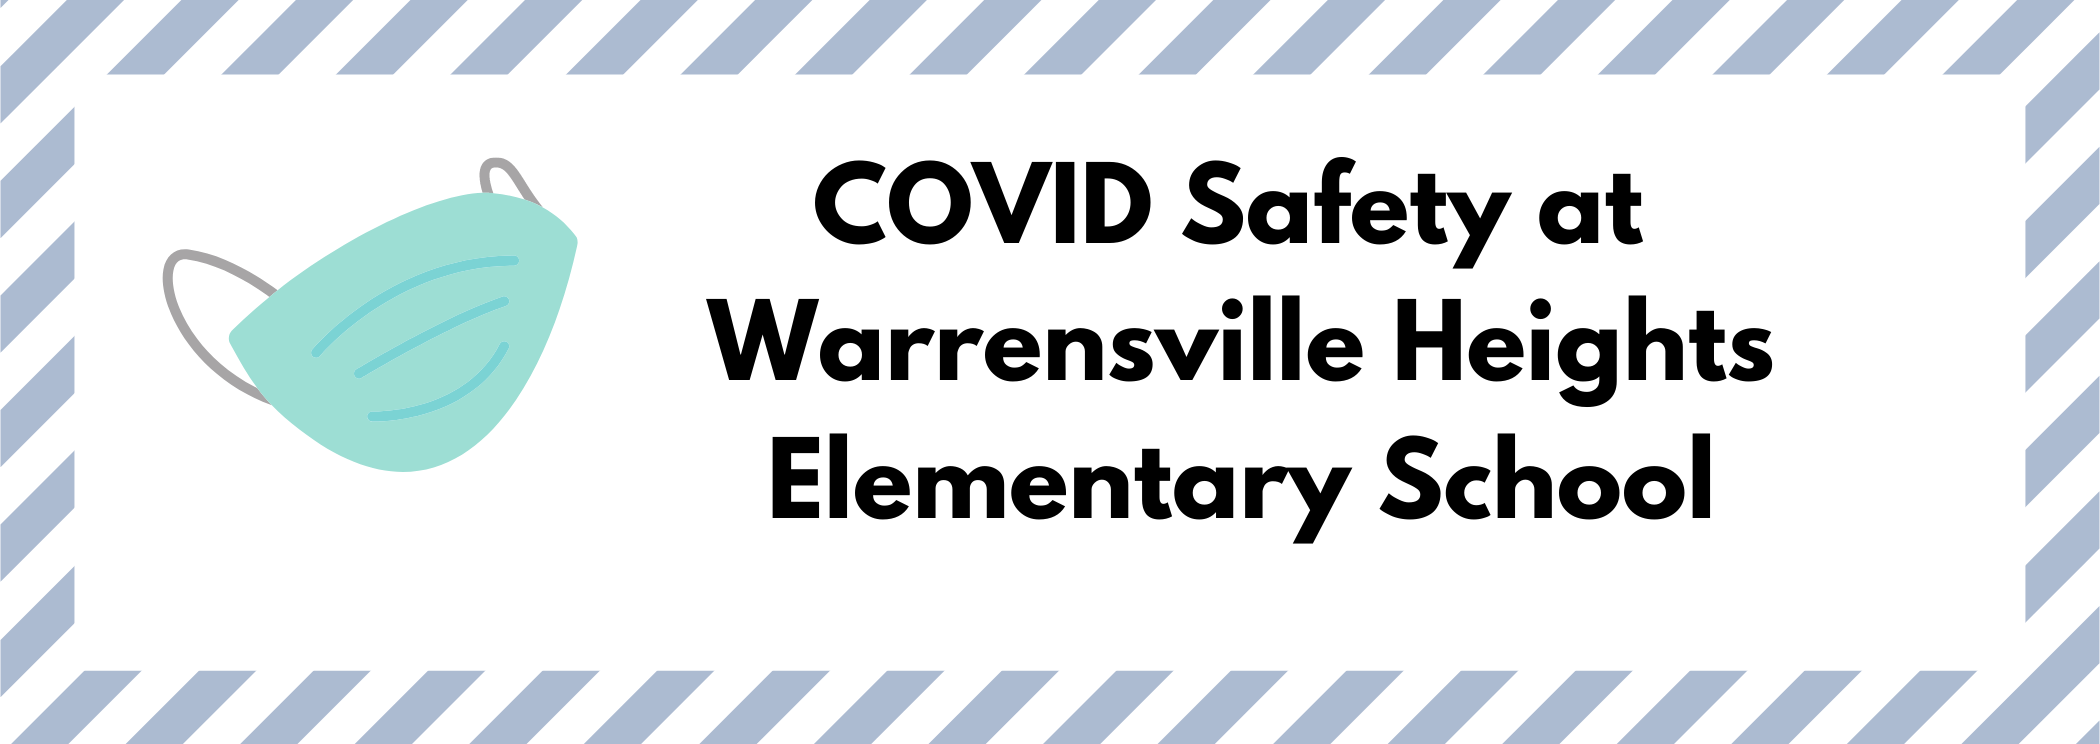 COVID safety at Warrensville Heights Elementary School